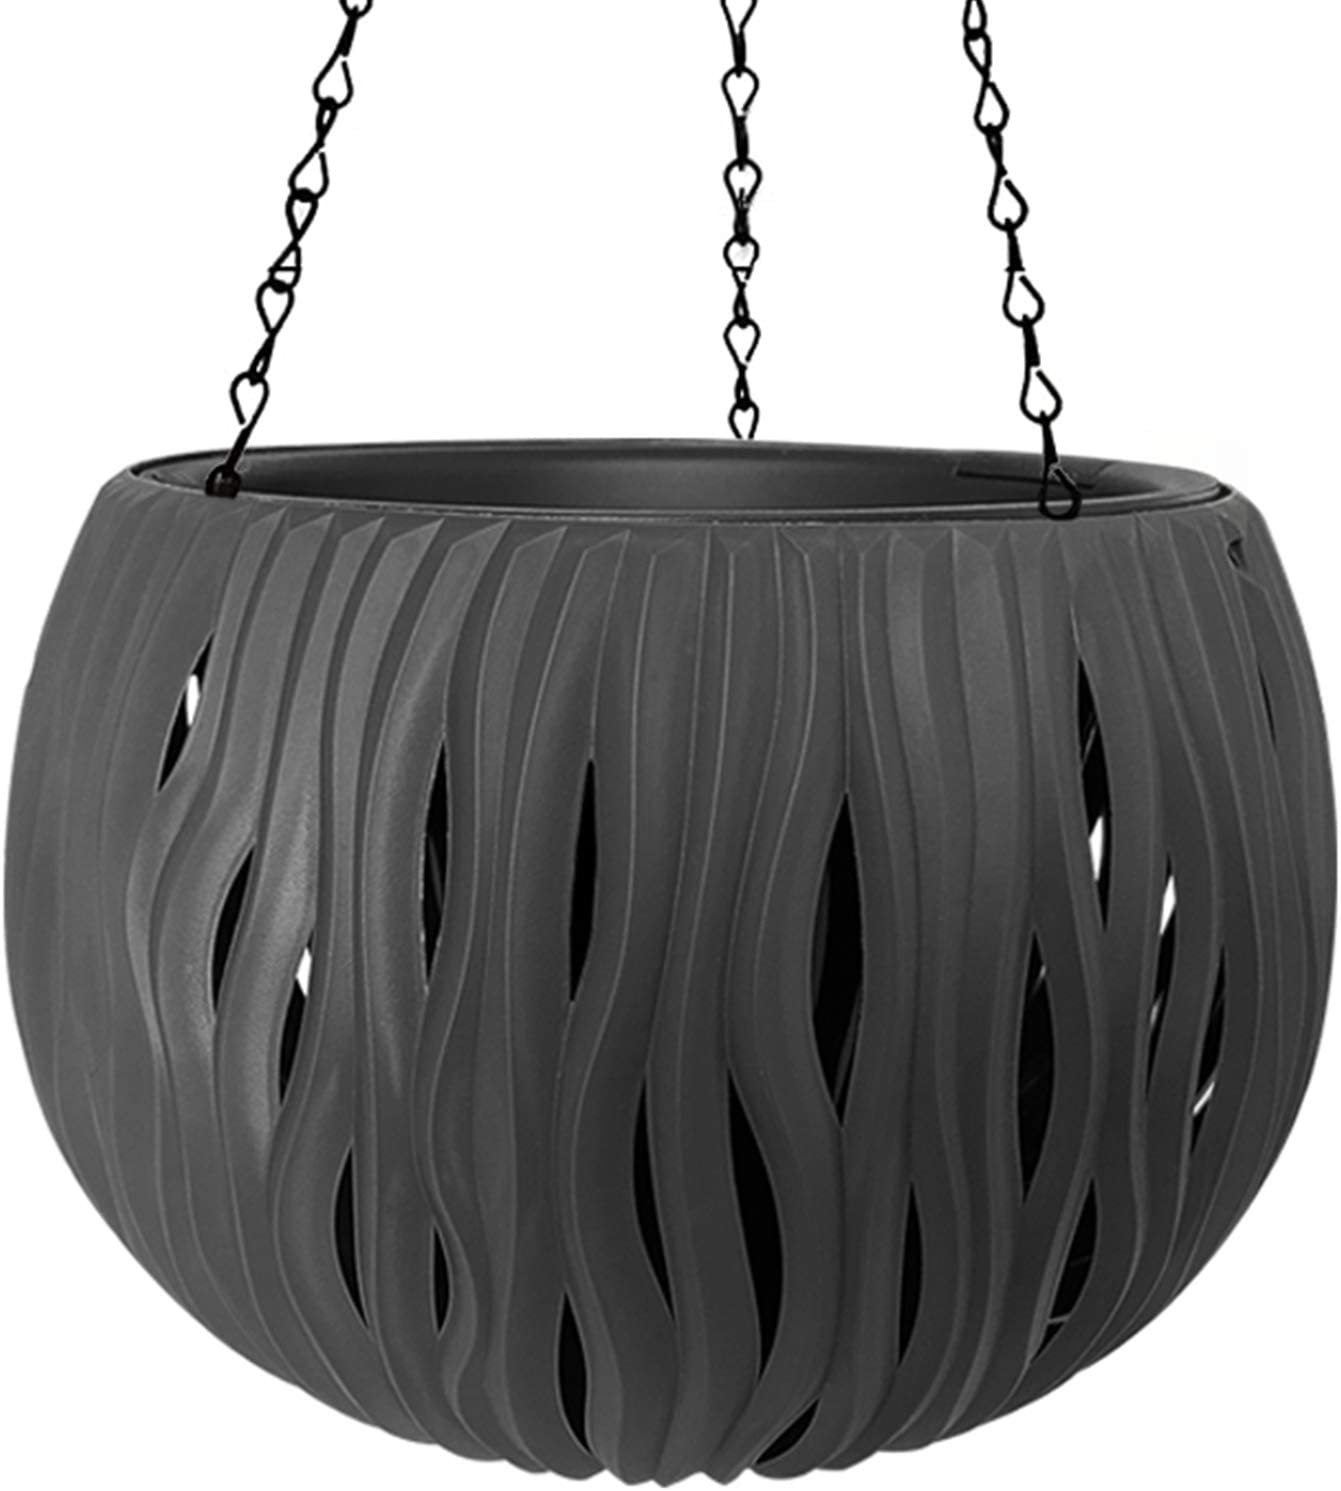 SEISHIN 11 Inch Hanging Flower Pot Self Watering Hanging Basket Planters Outdoor Plant Pots with Hanging Chain Office Garden Porch Balcony indow sill Black…